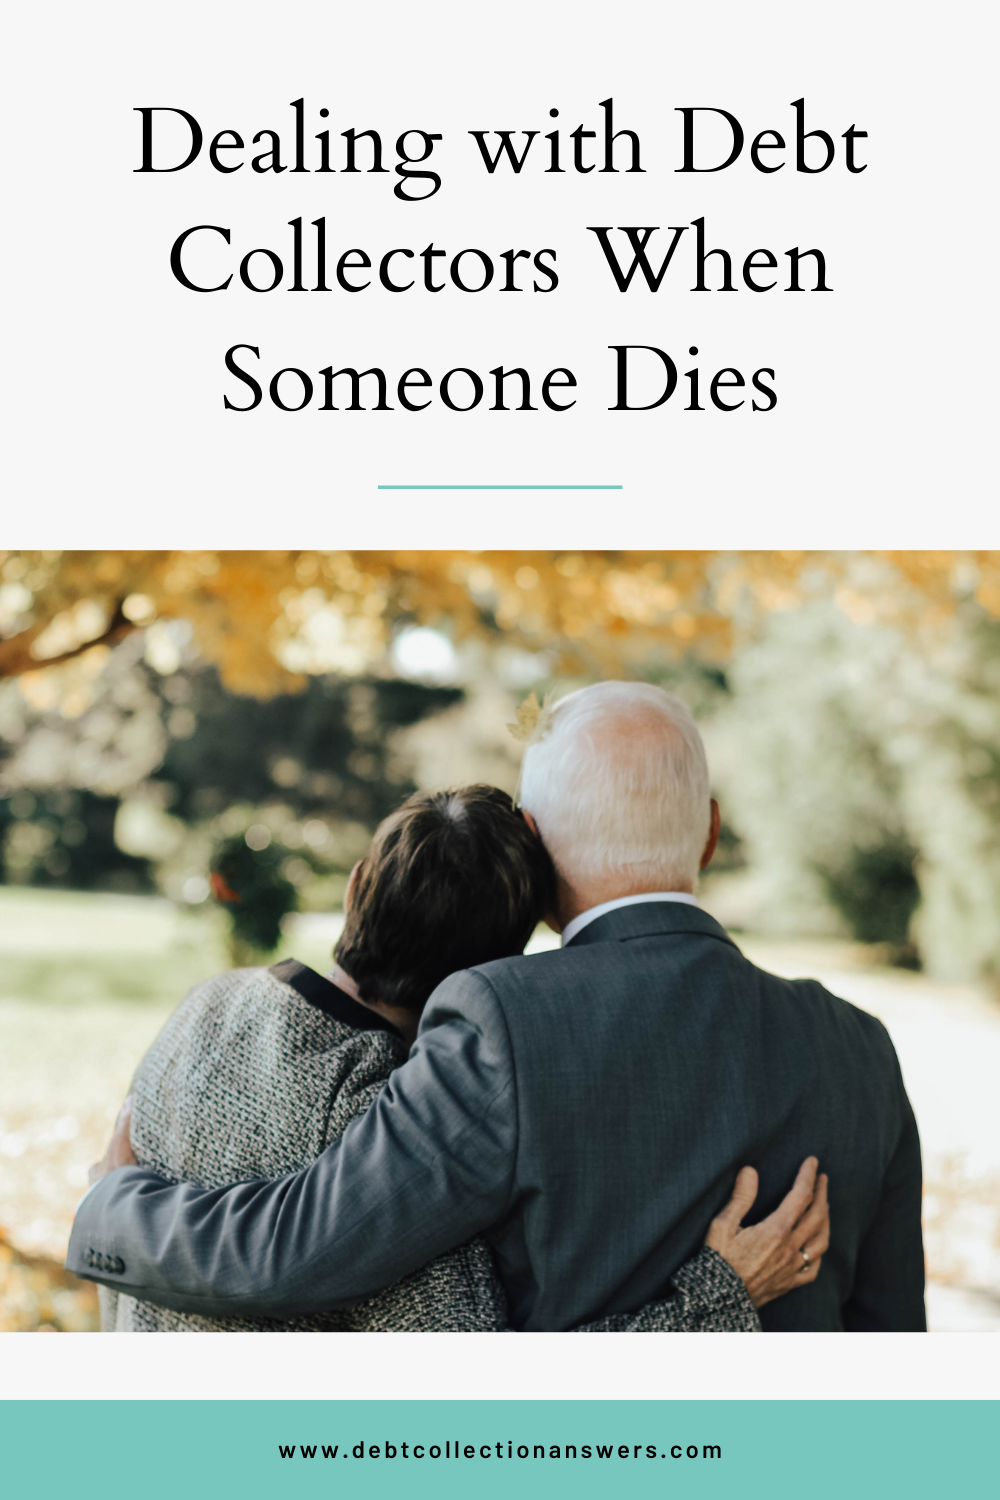 Dealing with Debt Collectors When Someone Dies